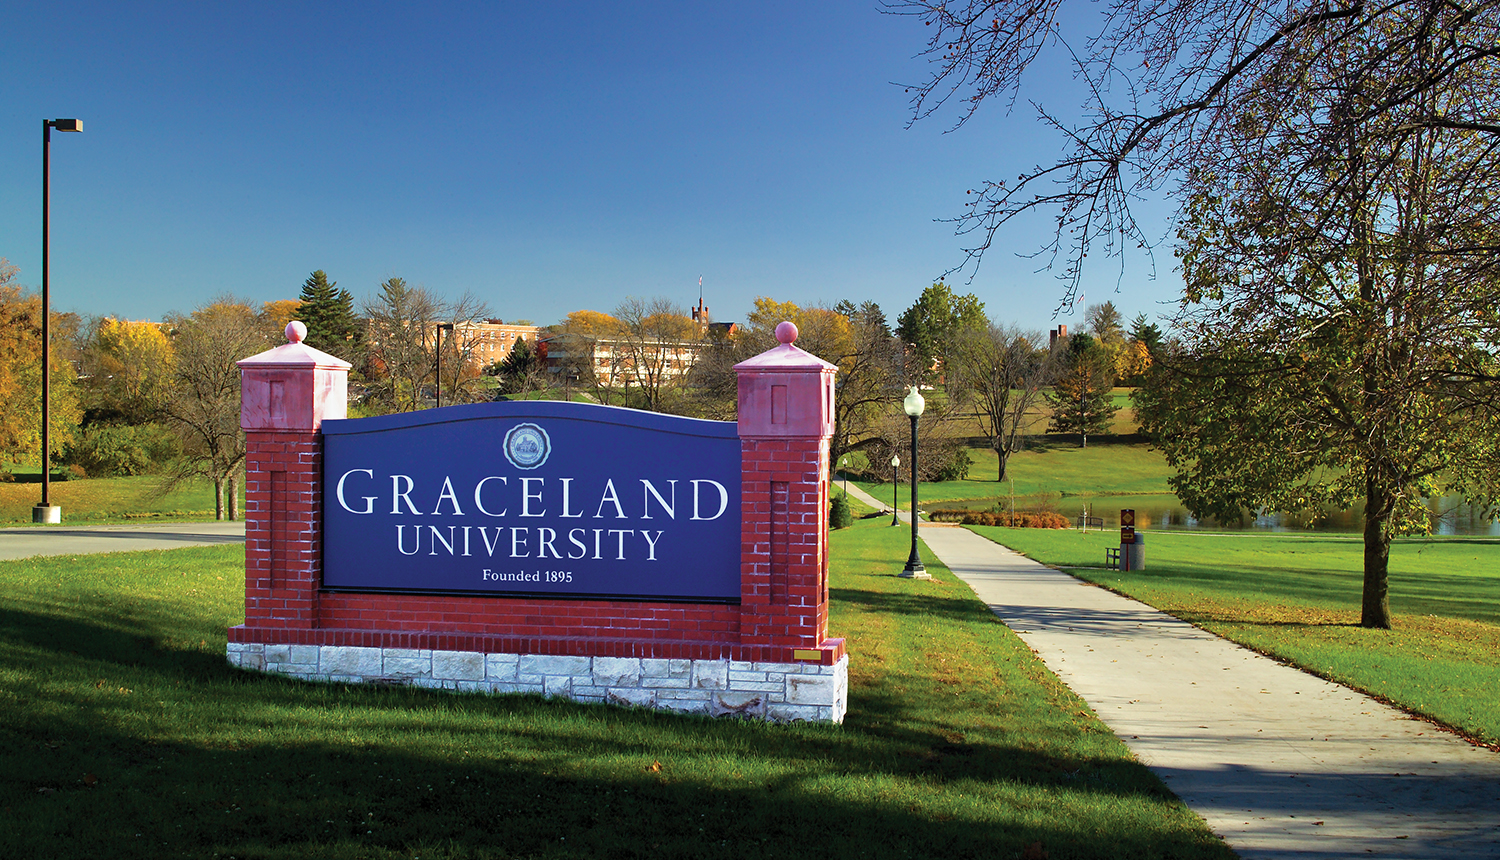 Graceland University Homecoming 2018 - Saturday, October 69:00 - 2:00 p.m. Alumni Book Signingfeaturing Daniel Hobart '95 and Julie Heide '98in Lamoni, Iowa on the Campus Quad.Click here for Homecoming Details